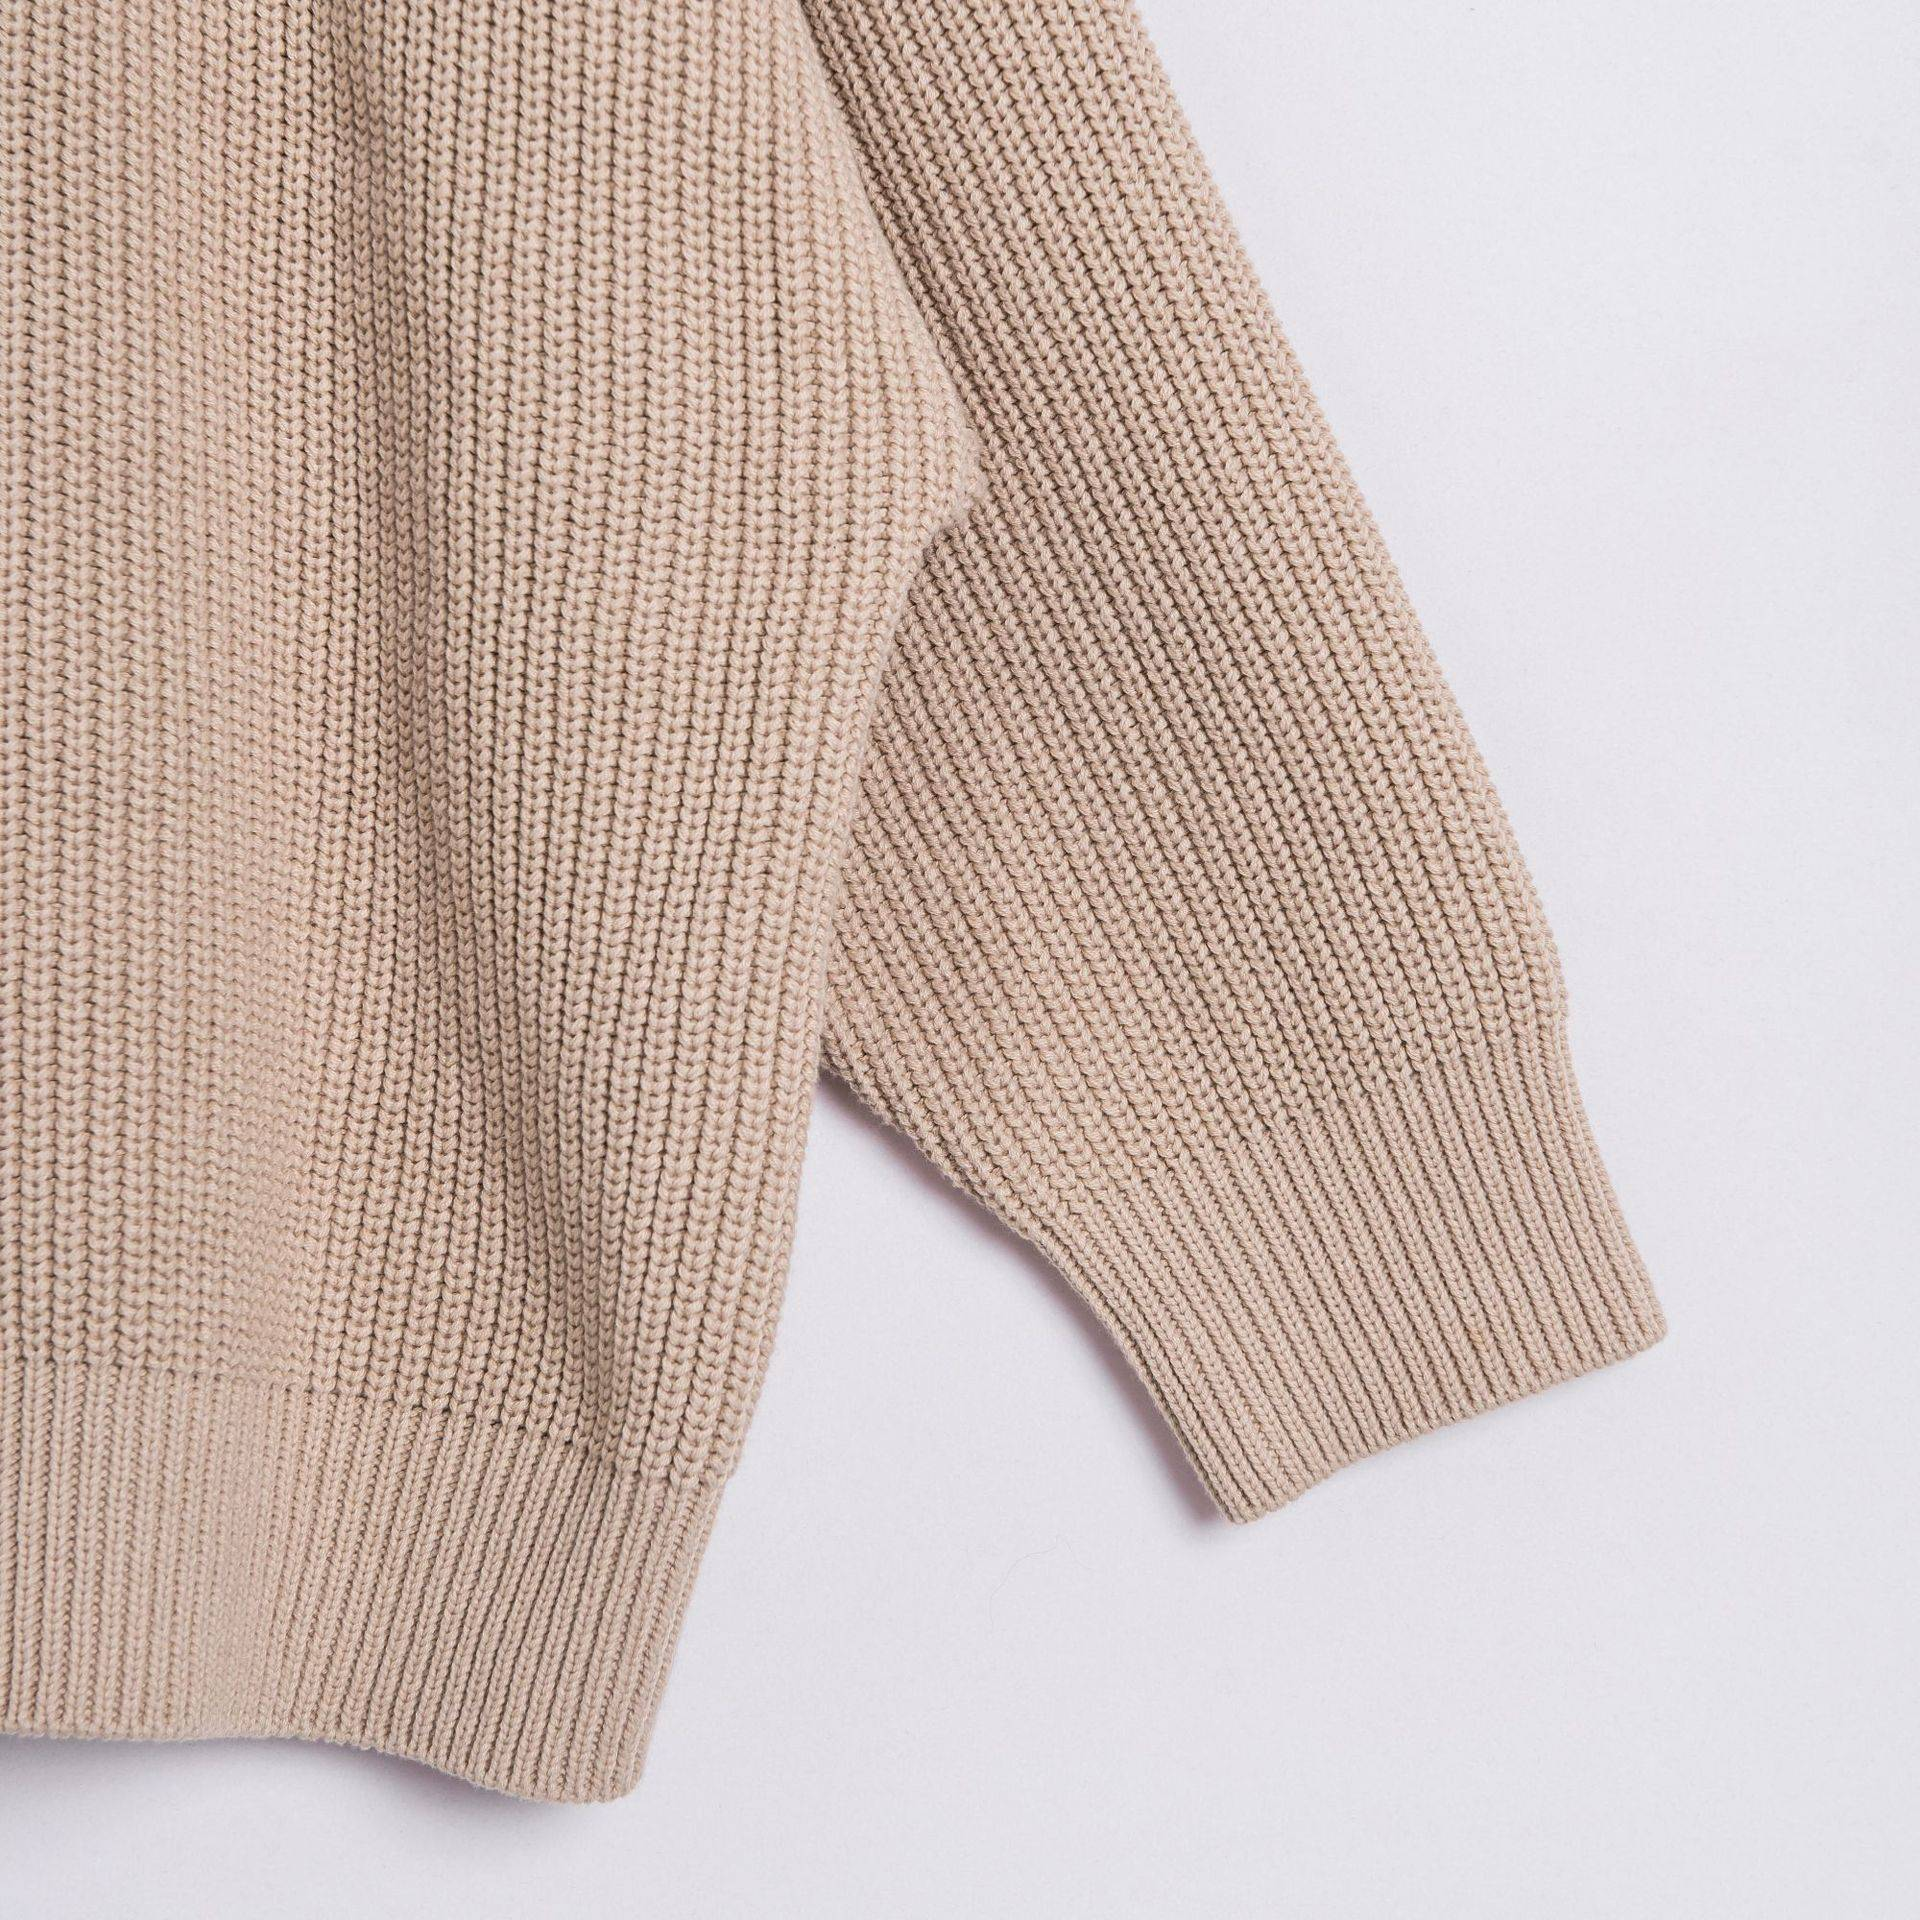 OEM cardigan for women custom thin knit long sleeve cotton plain anti-wrinkle sweater V neck spring autumn for girs Featured Image